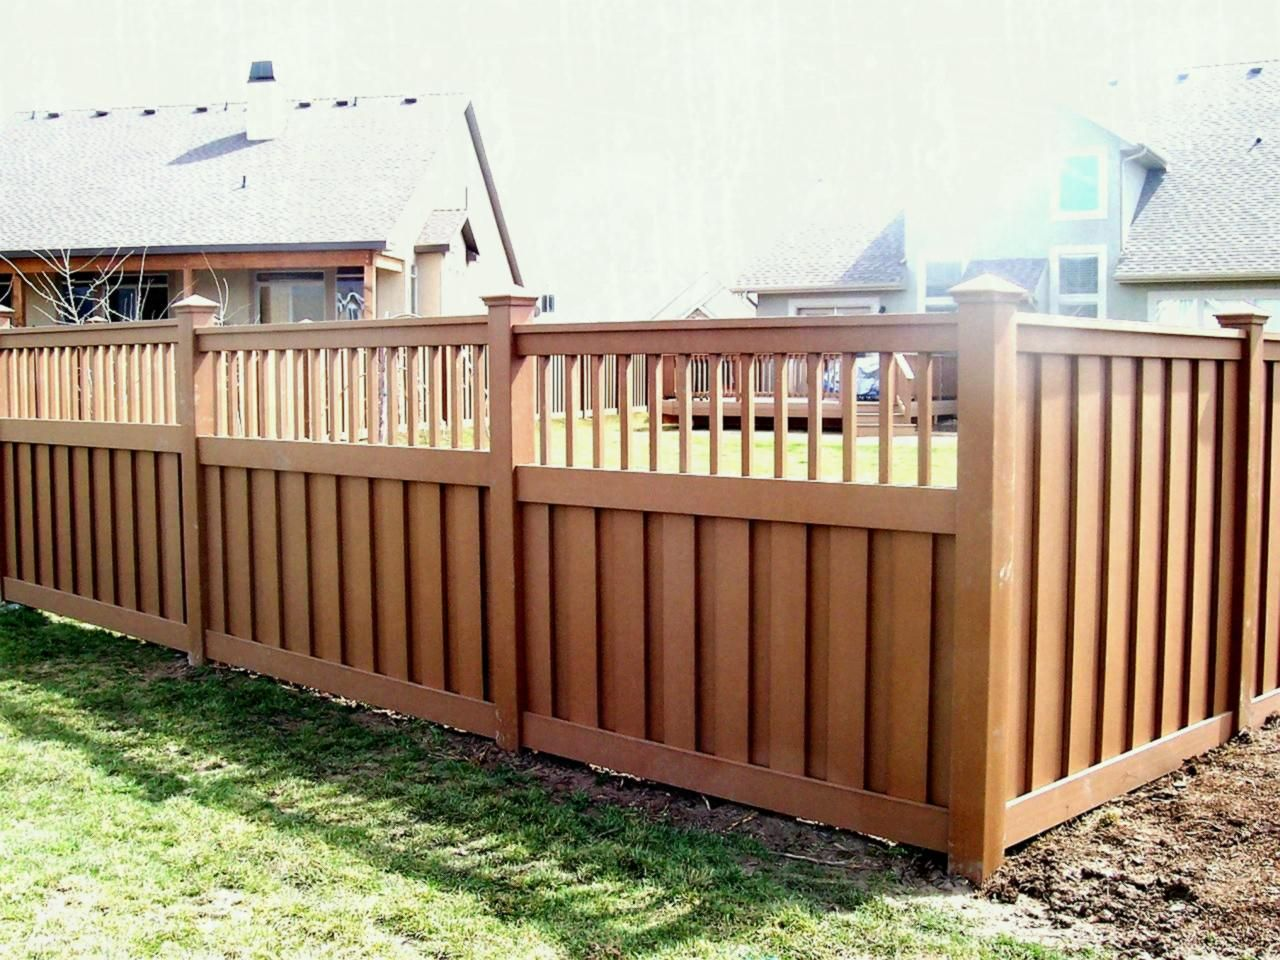 50 Unknown Facts About Fence For Small Backyard Revealed By Industry Leaders Wood Fence Design Fence Design Backyard Fences